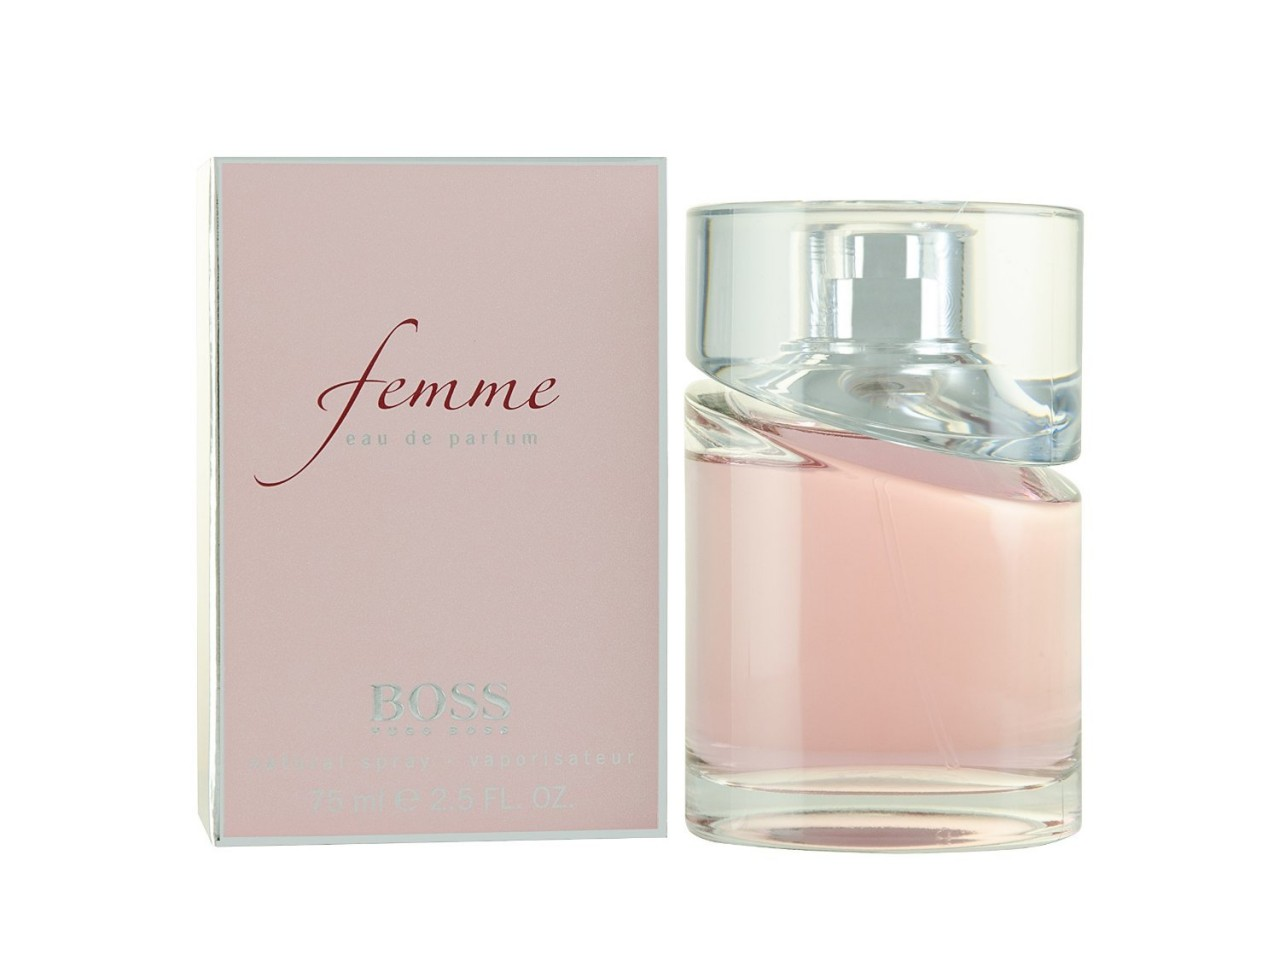 Hugo Boss Femme Eau De Parfum 75 Ml Original Perfume For Women